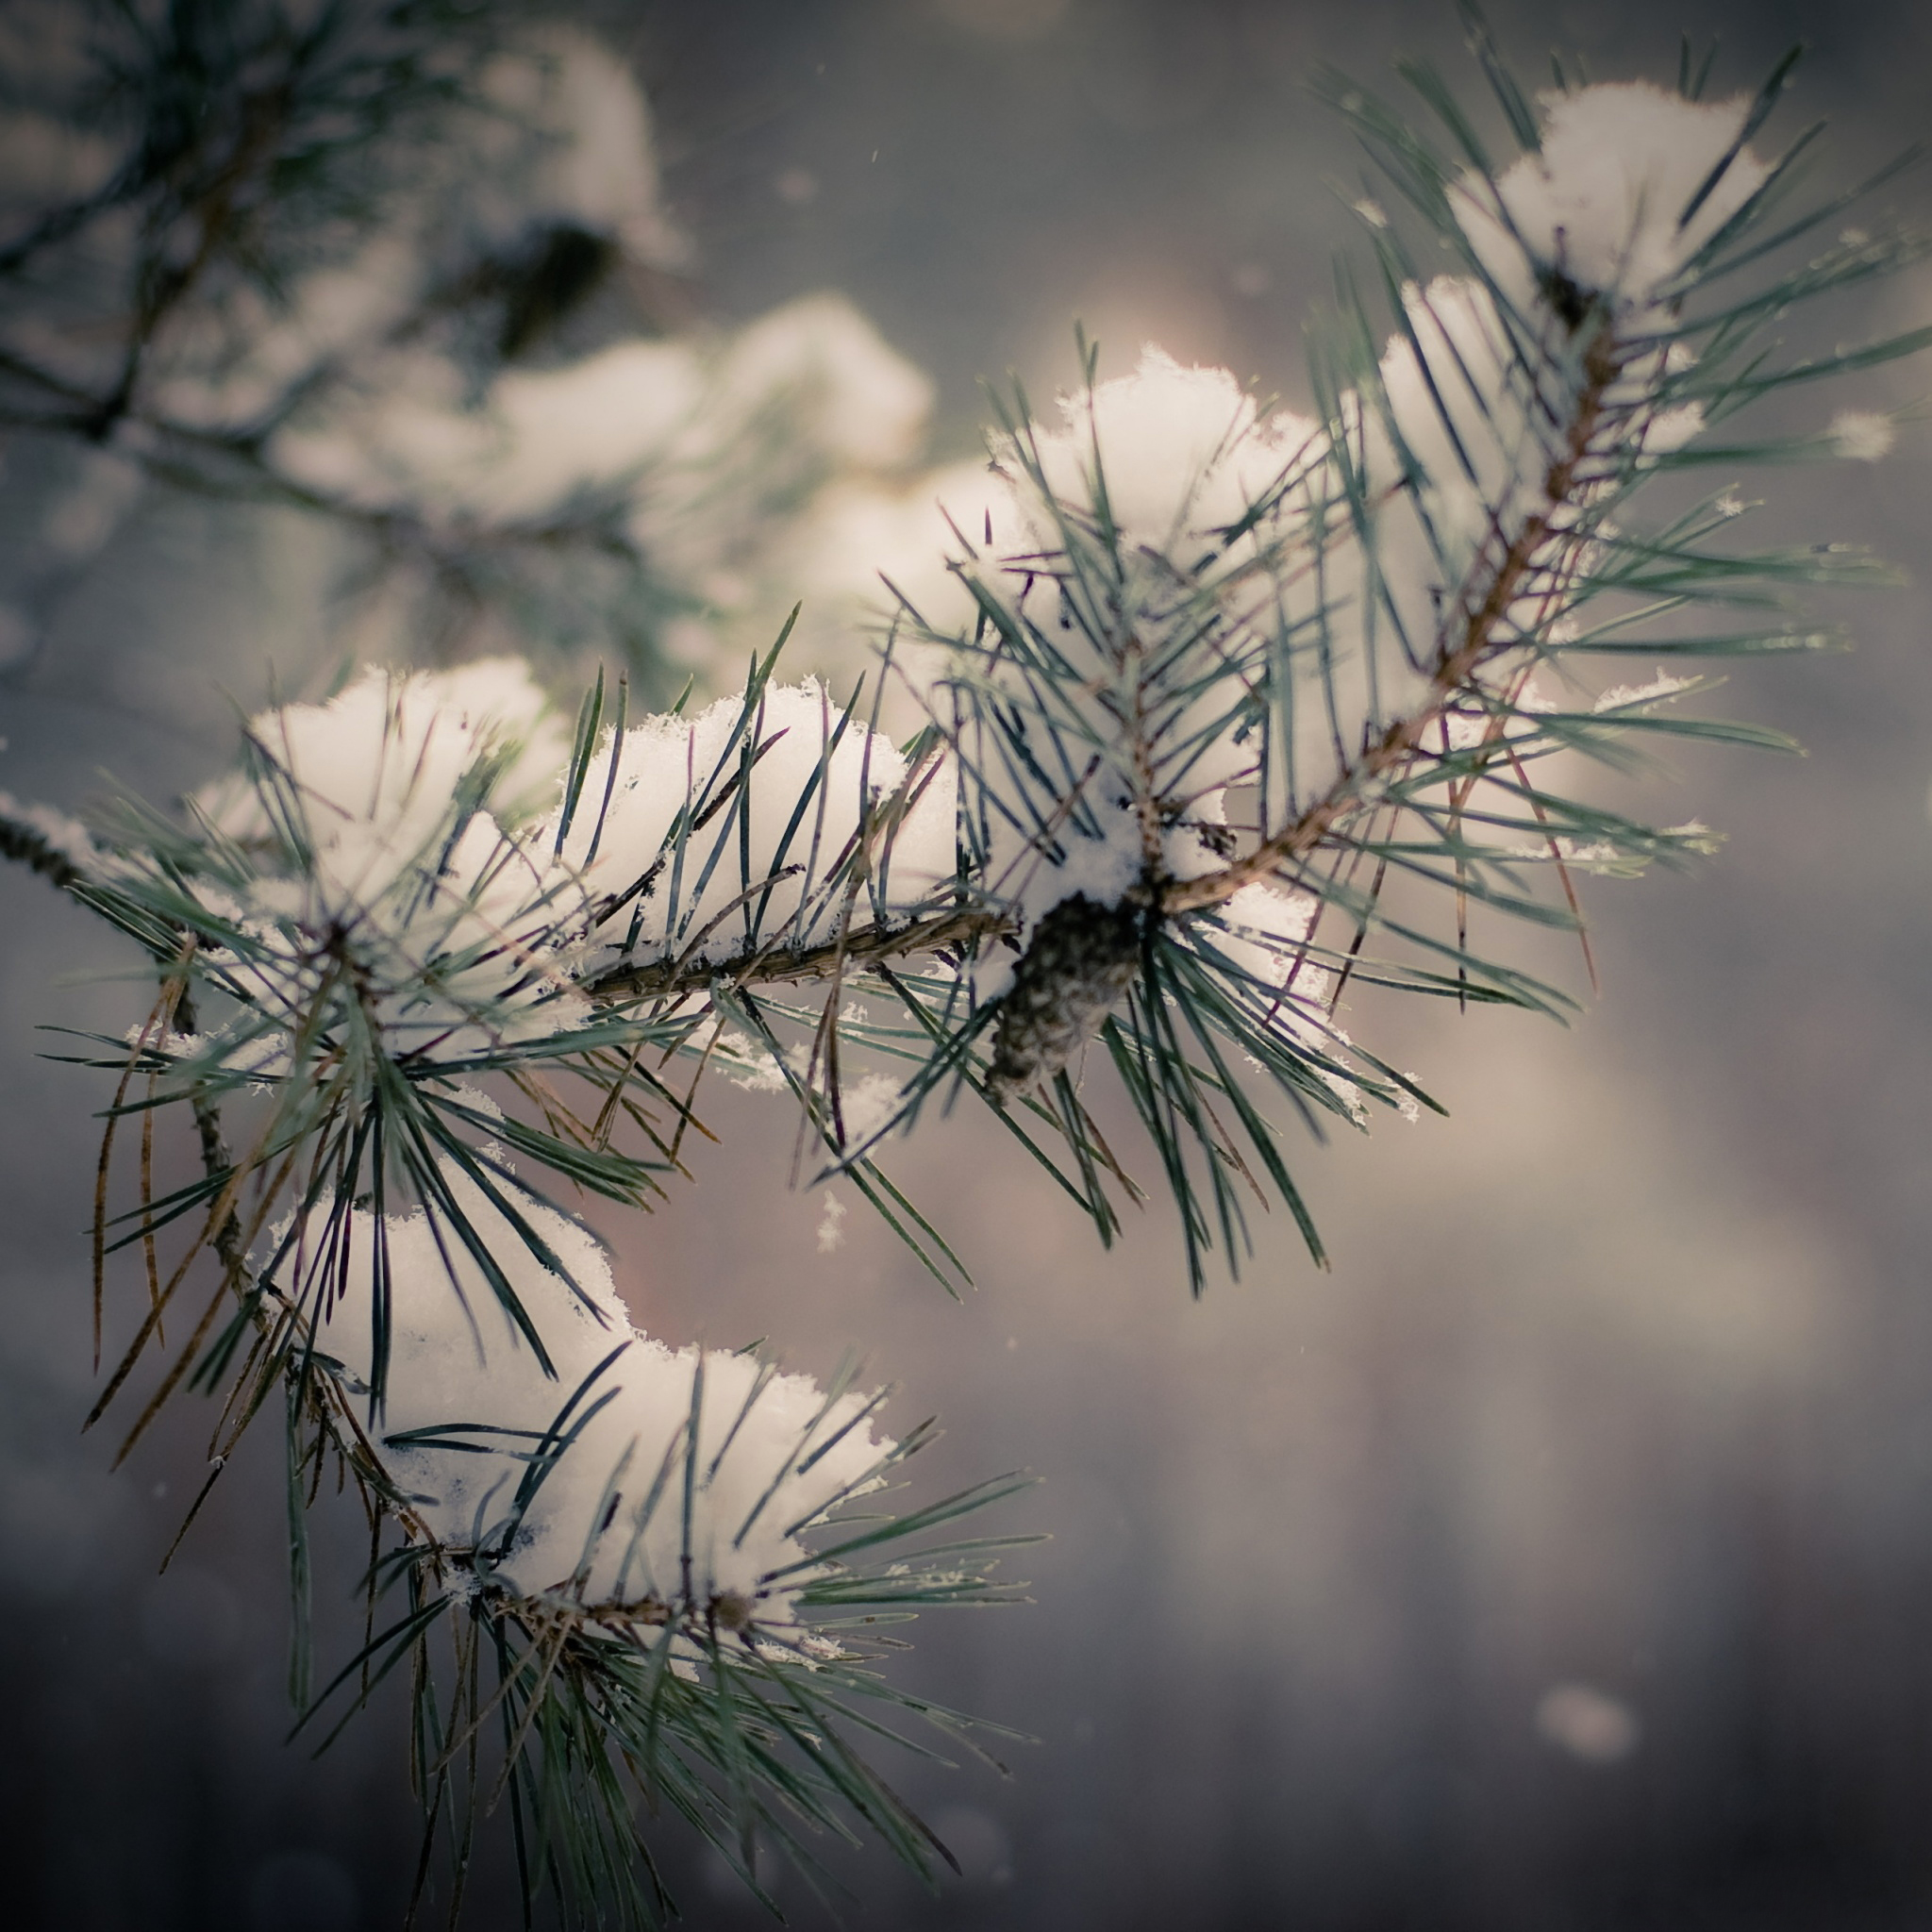 Needles-and-Snow-3Wallpapers-iPad-Retina